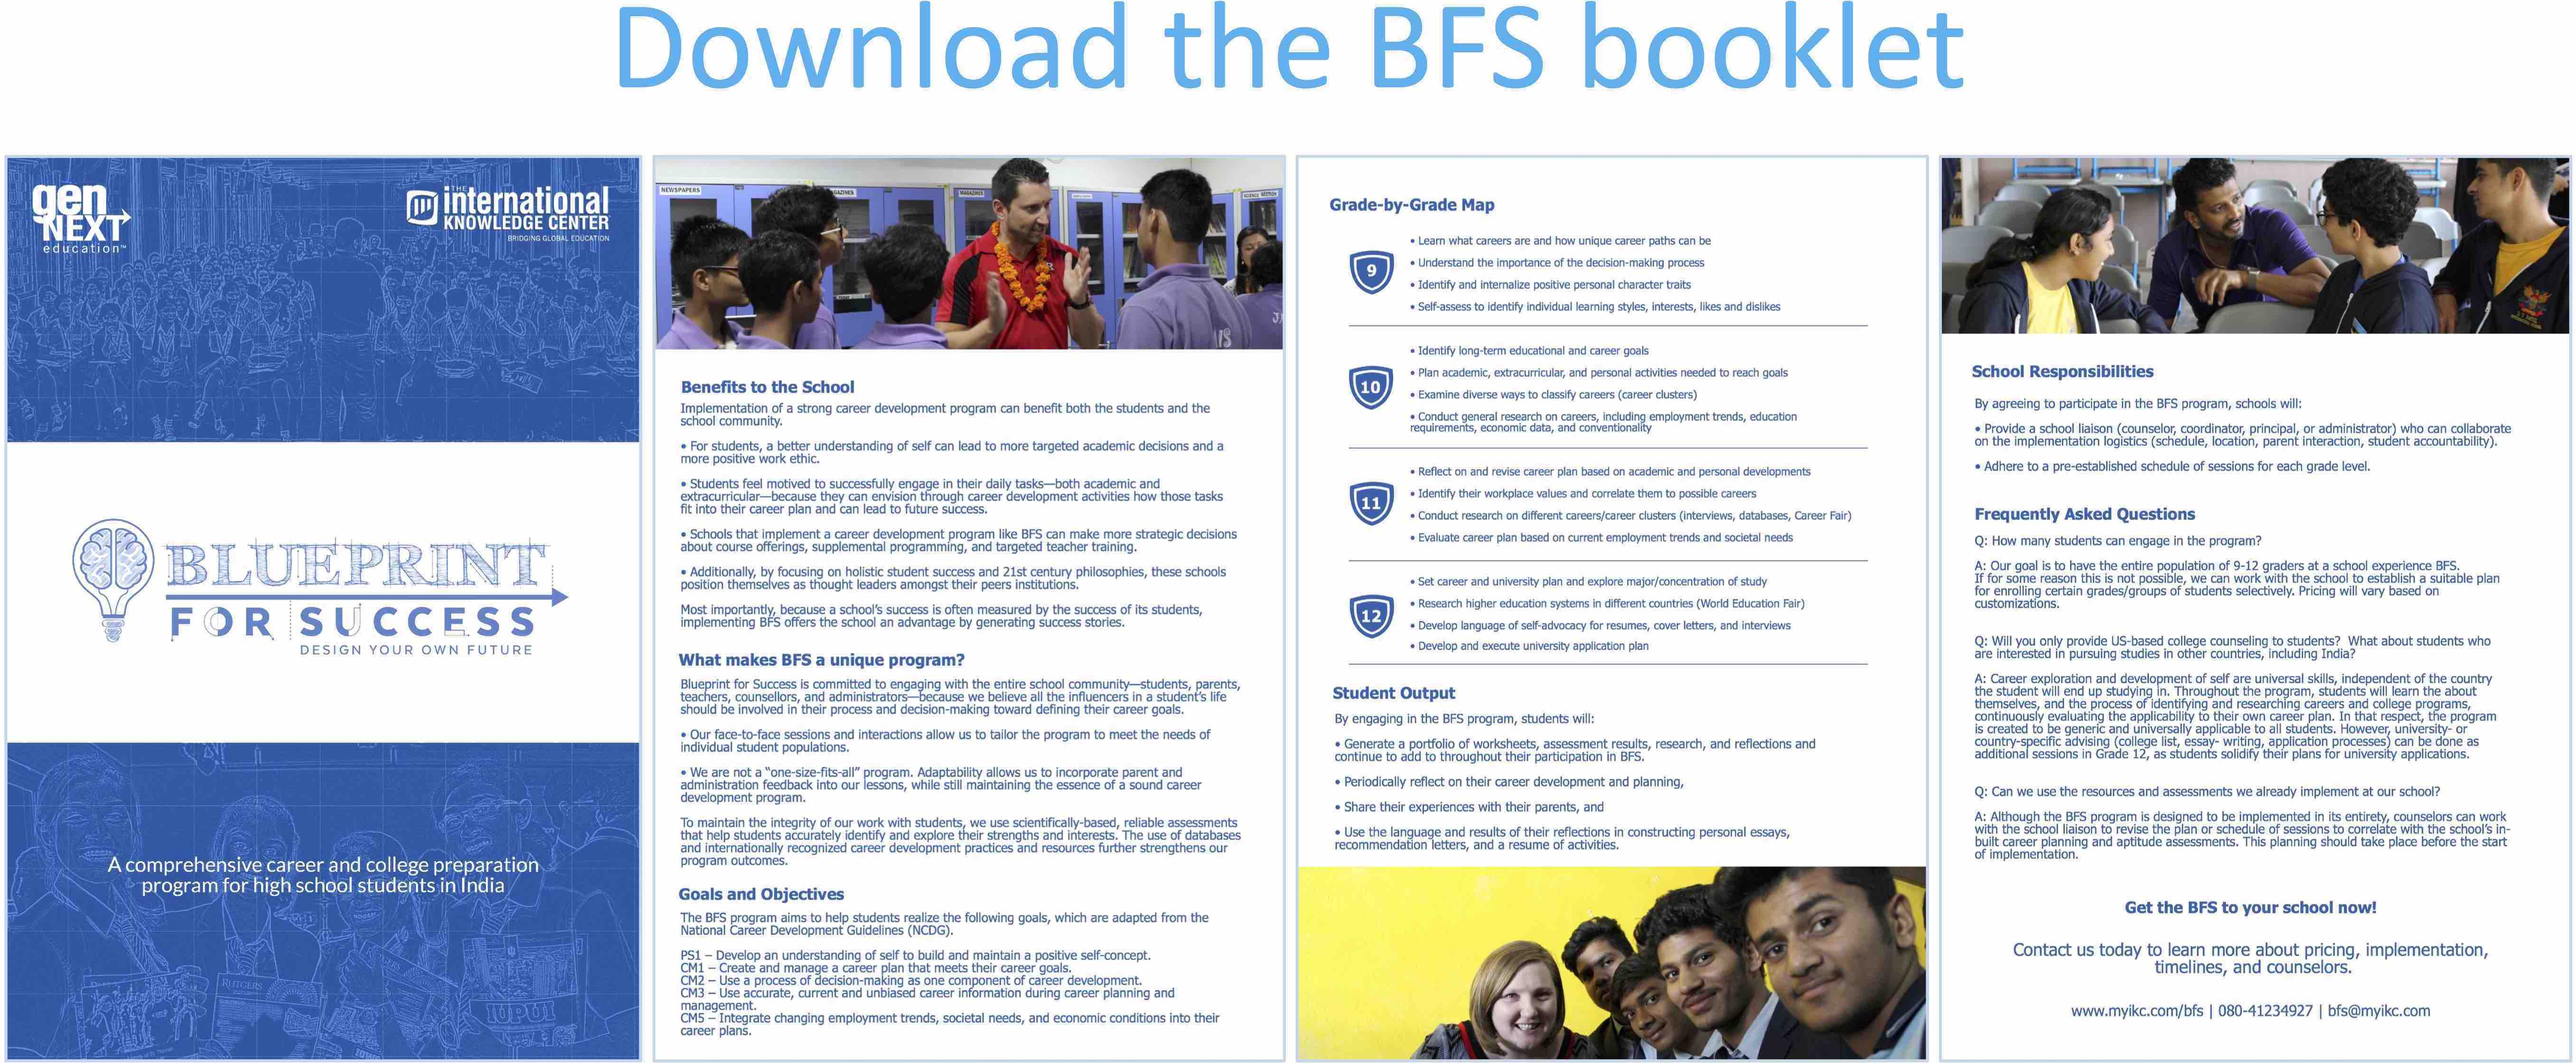 Blueprint for success bfs international knowledge center get the bfs to your school now malvernweather Image collections